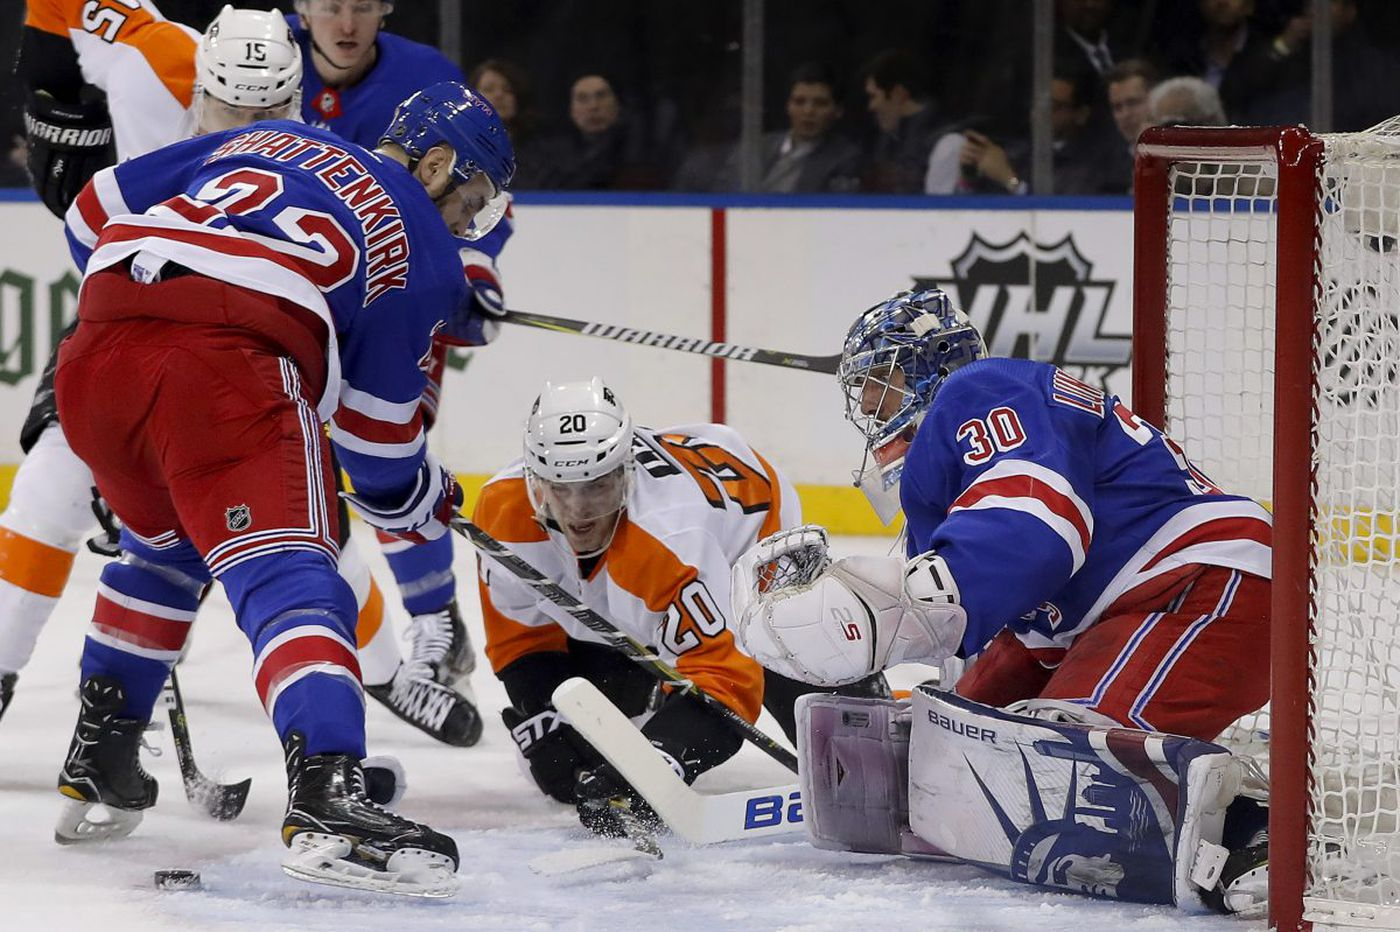 Maturing Flyers trying to pay back Rangers